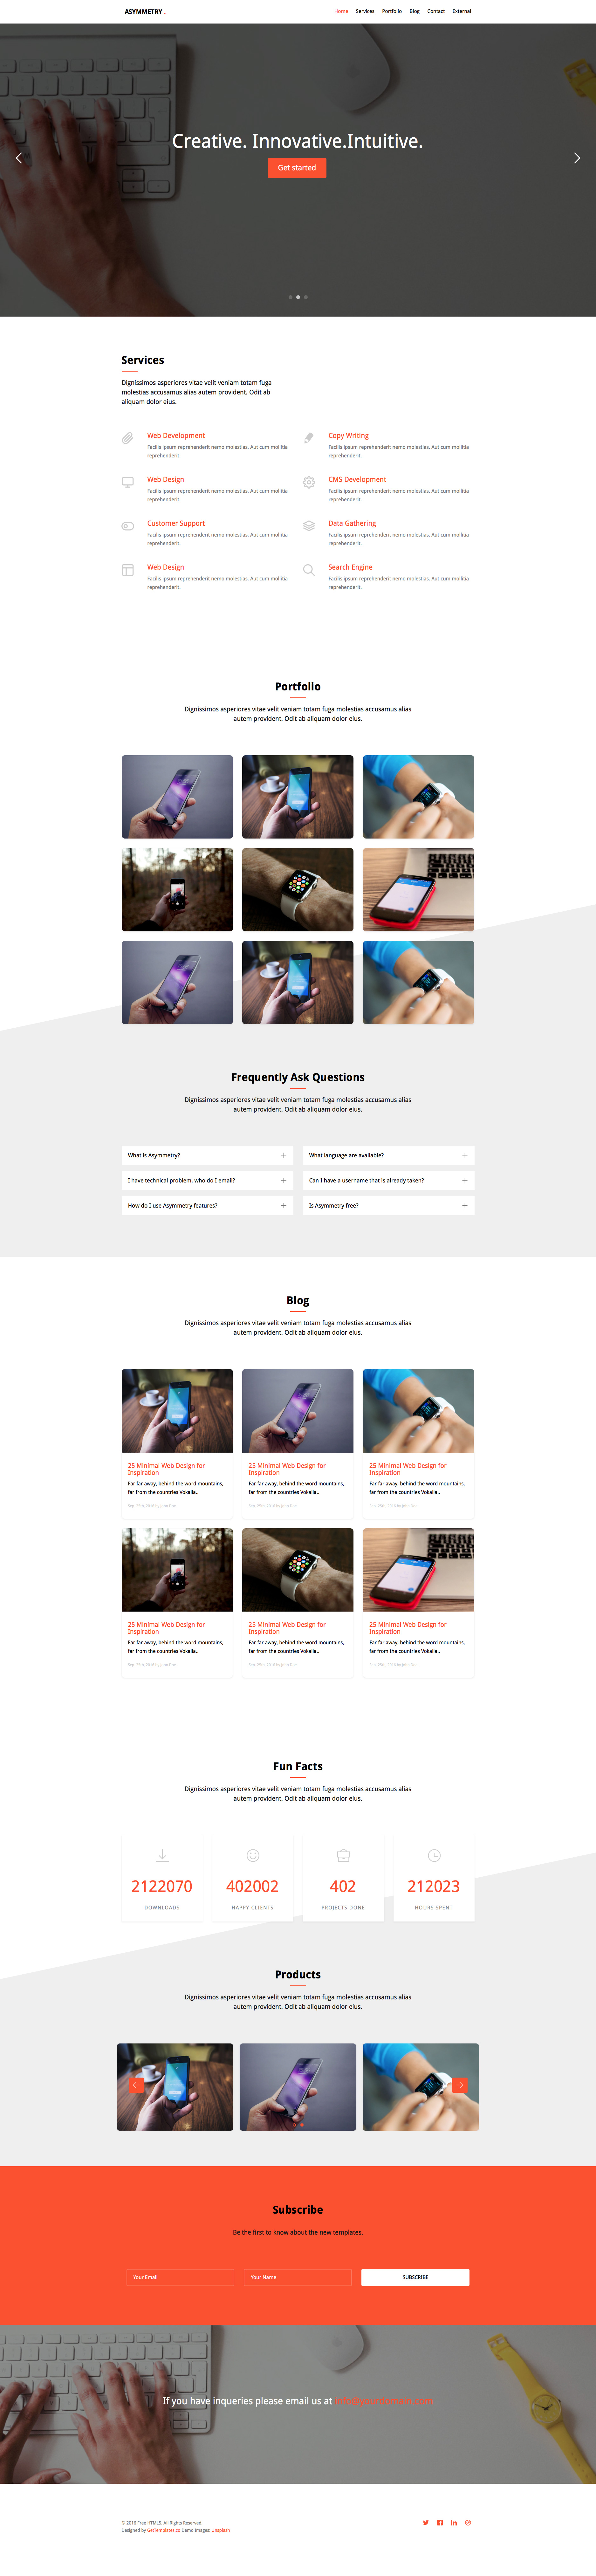 Asymmetry is a free responsive HTML5 one page template for small business and portfolio websites. It features sliders, counter, off-canvas menu and many more. Asymmetry template is fully responsive and built in Bootstrap 3 framework.